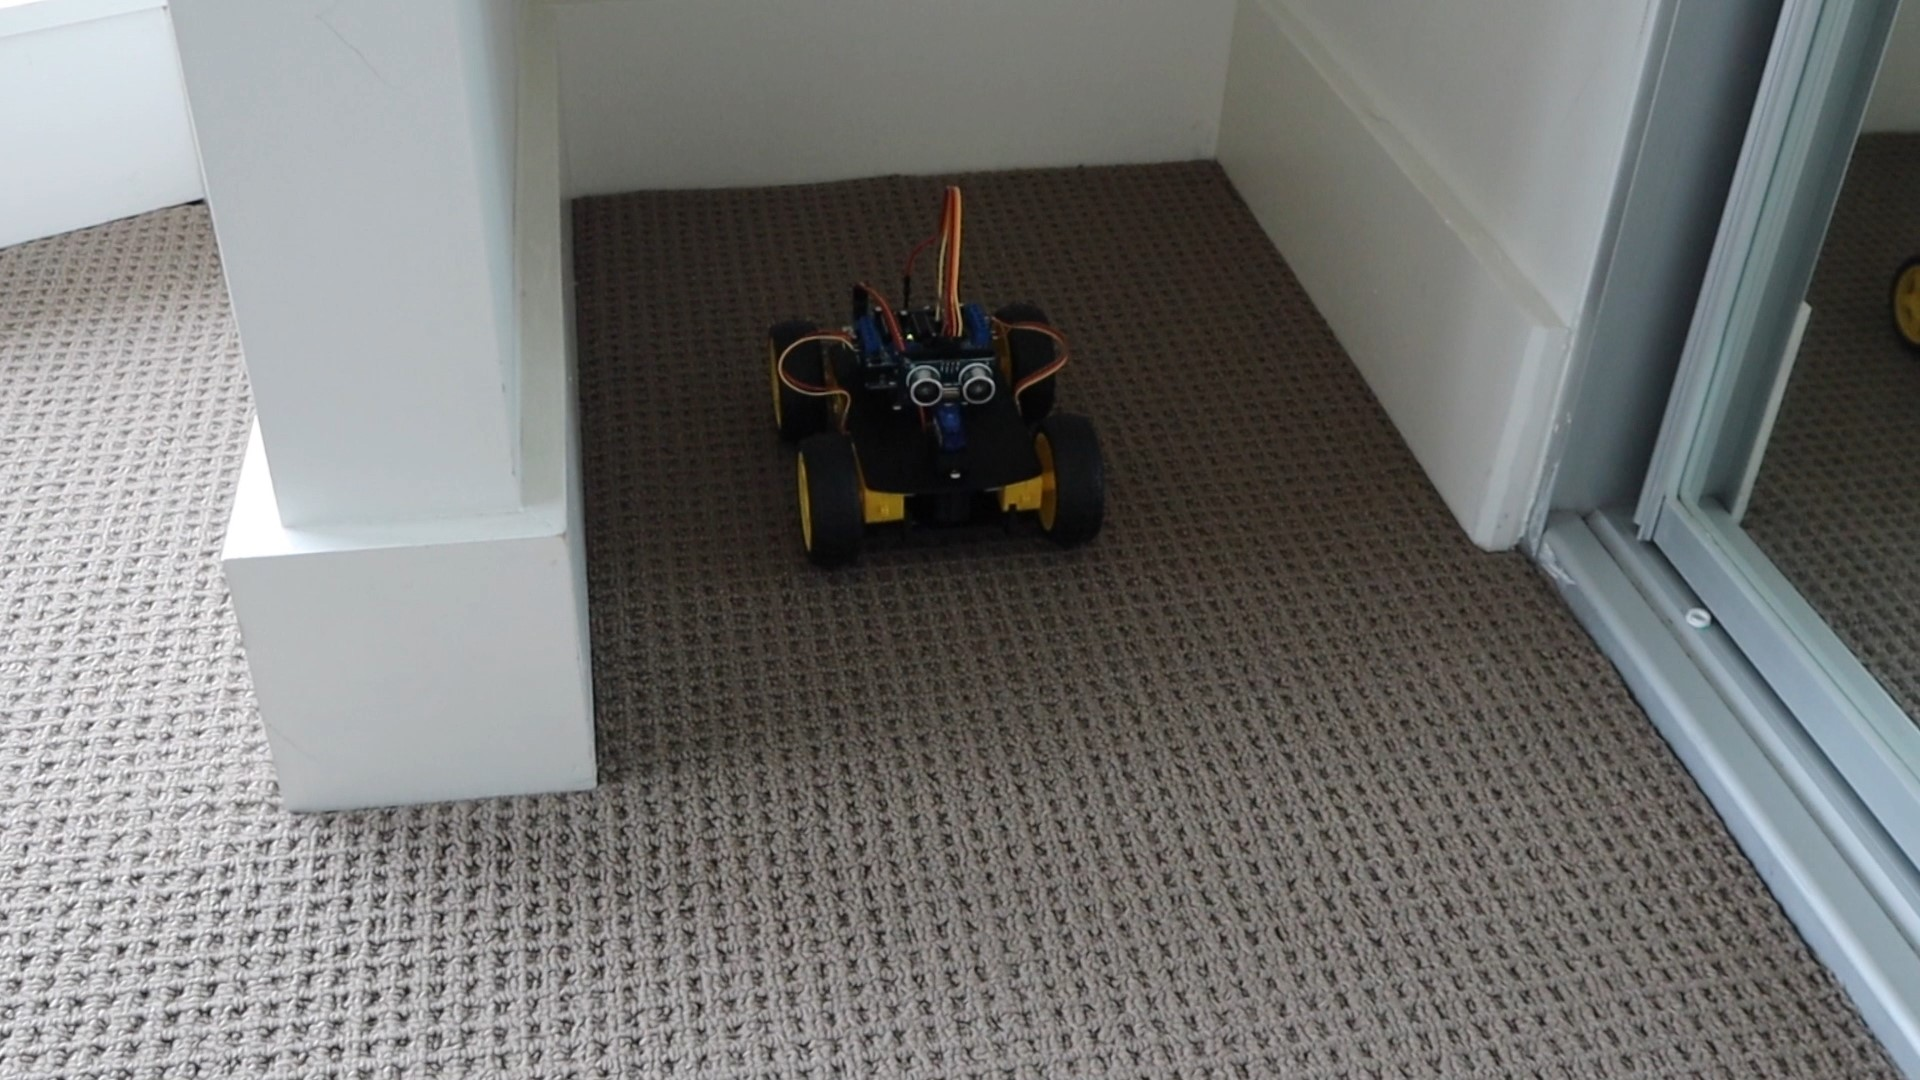 Obstacle Avoiding Robot Car Will Turn Around In Tight Spaces